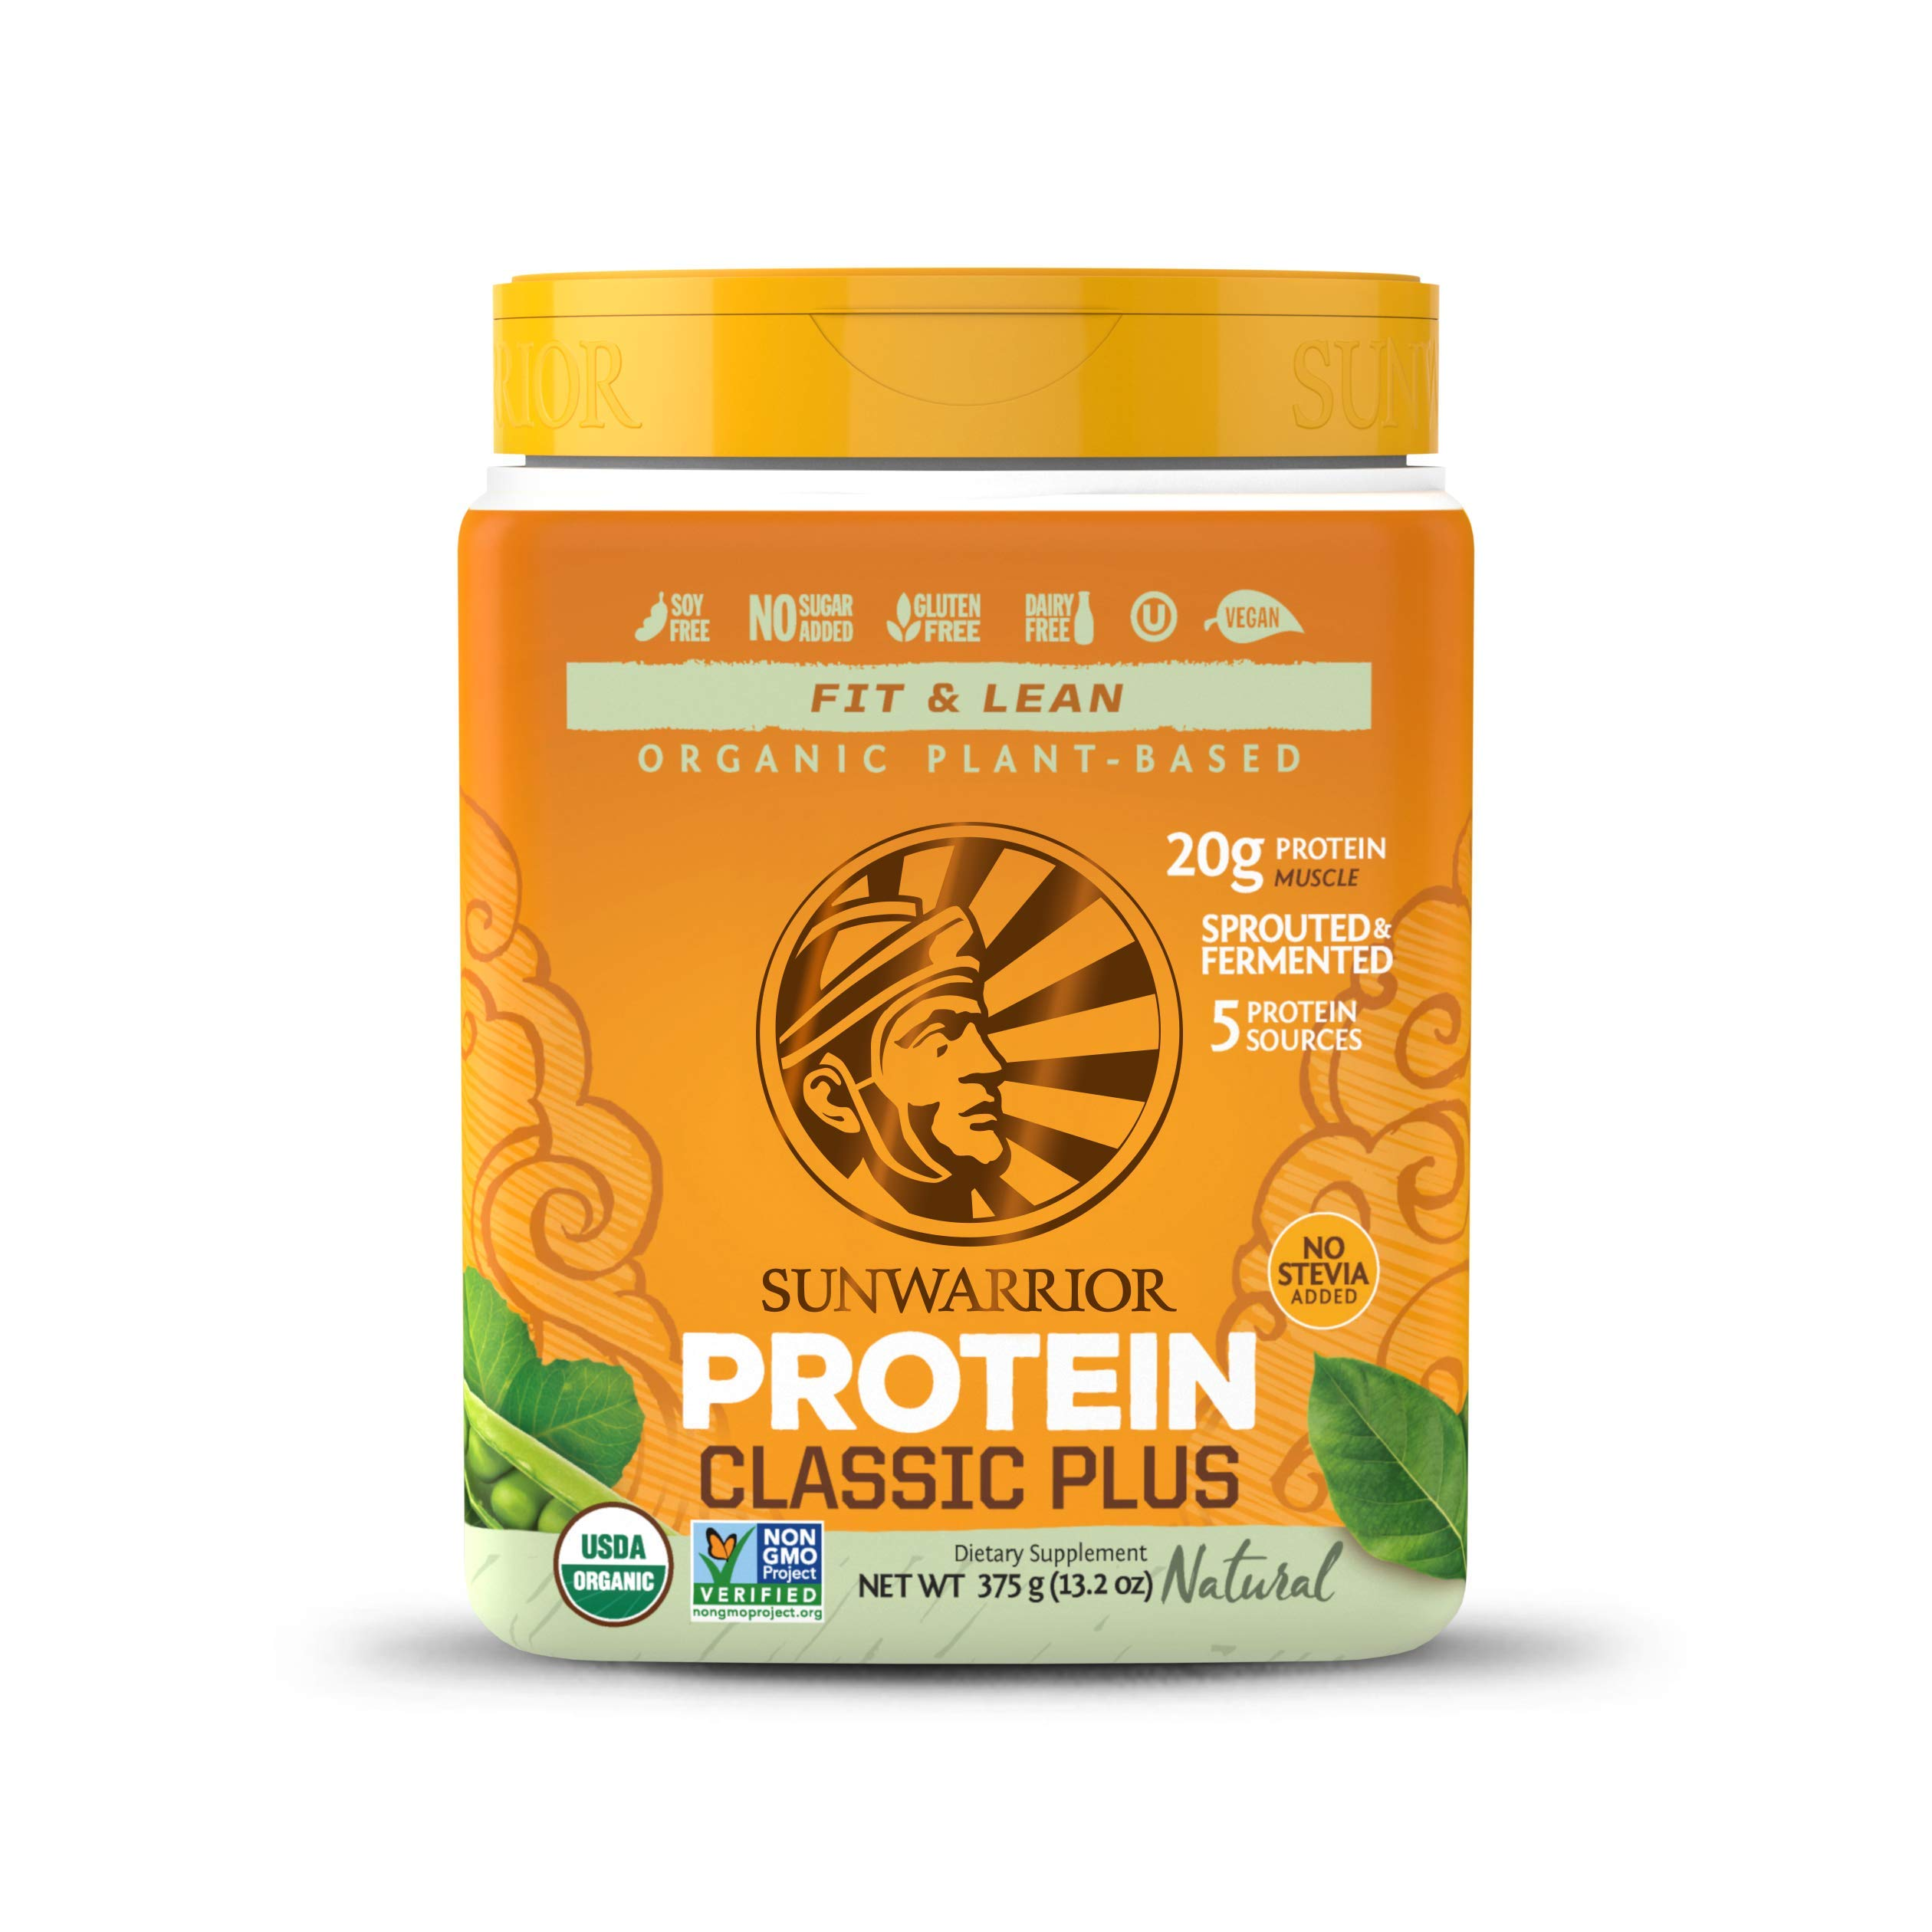 Sunwarrior - Classic Plus, Vegan Protein Powder with Peas & Brown Rice, Raw Organic Plant Based Protein, Natural, 15 Servings